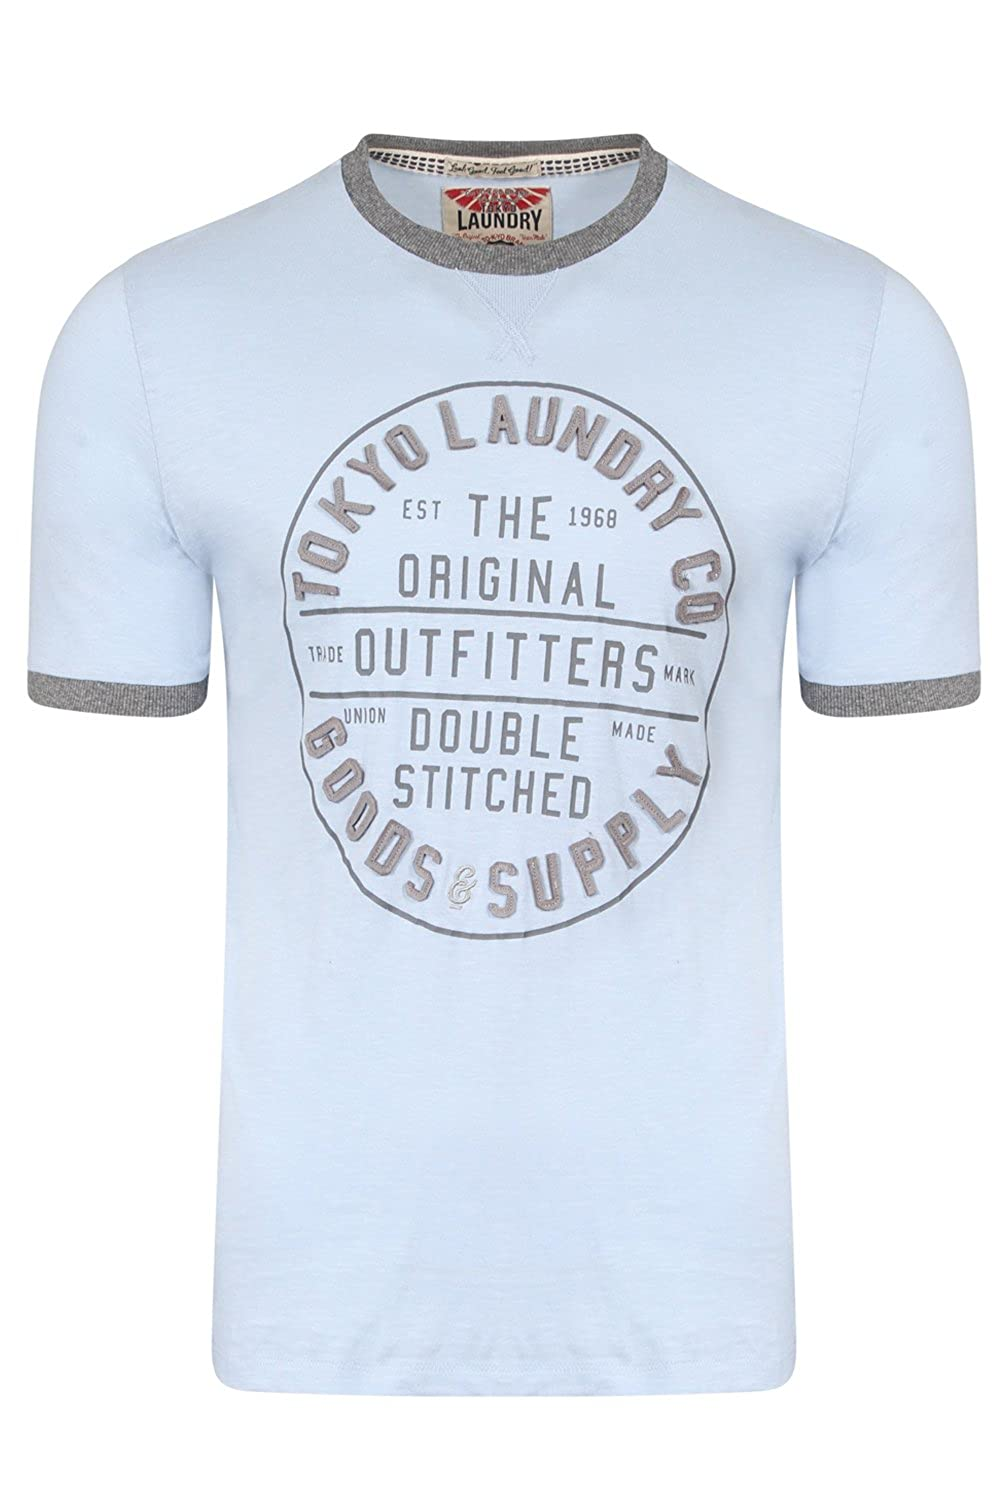 Mens Crew Neck T-Shirt by Designer Tokyo Laundry /'Double Stitched/' 100/% Cotton